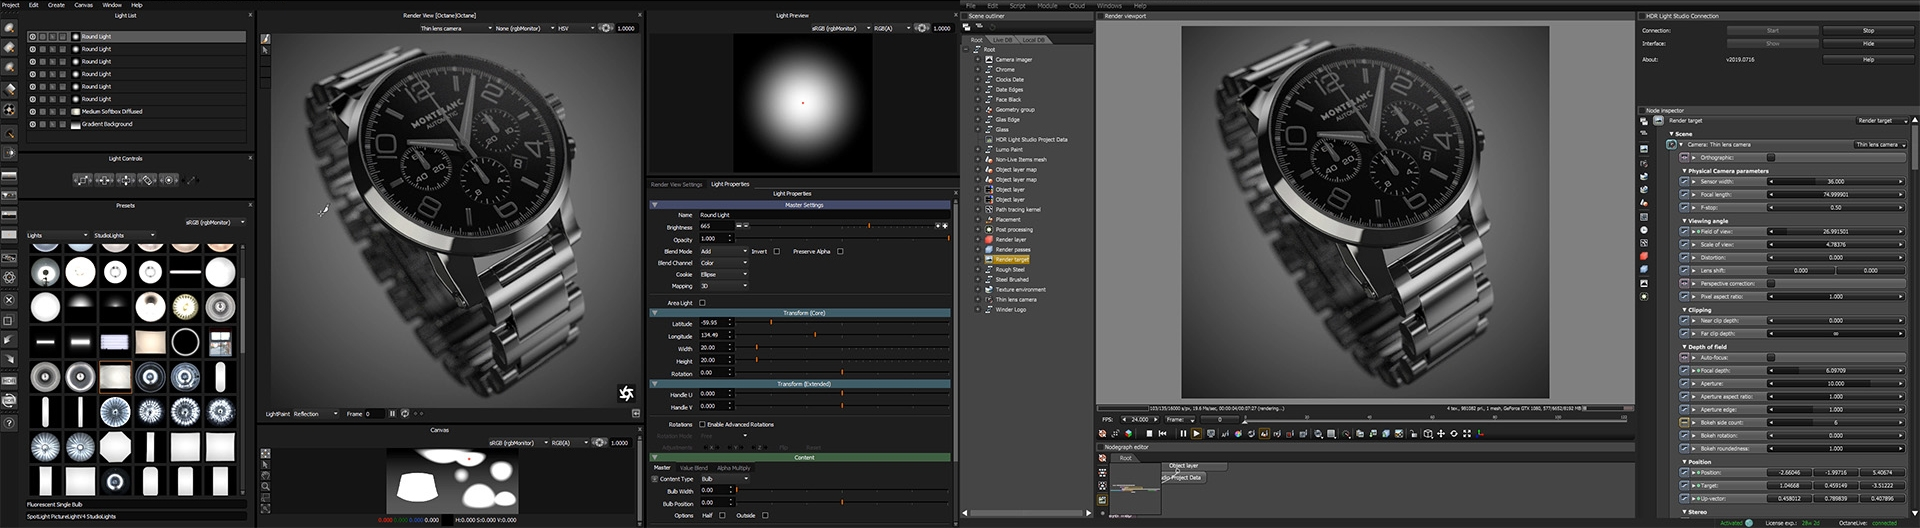 HDR Light Studio connected to Octane Standalone